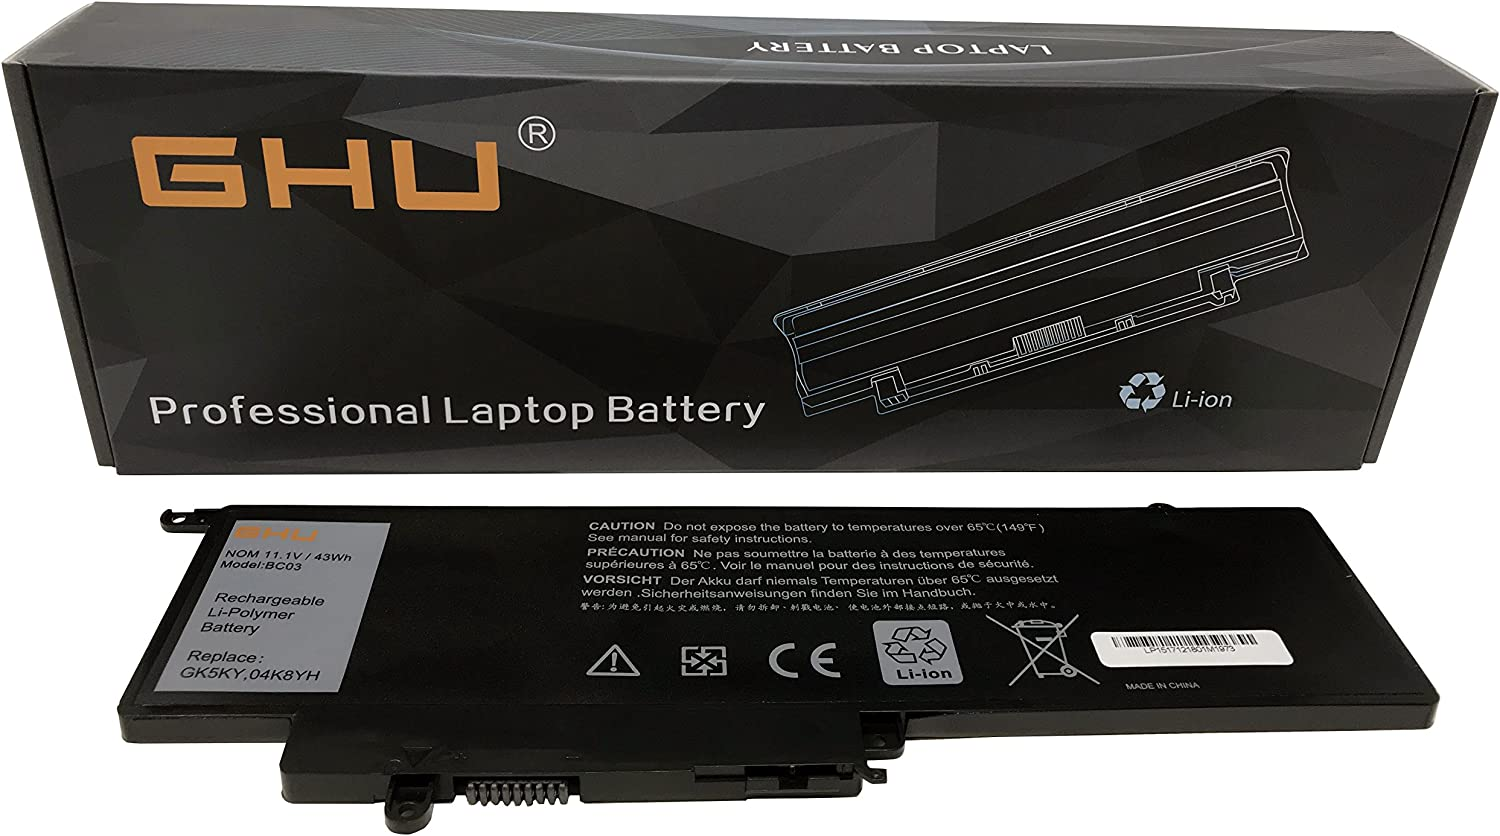 "GHU Battery 43 WH 11.1V Replacement for GK5KY 92NCT 04K8YH 0WF28 4K8YH 092NCT 92nct Compatible for Dell Inspiron 13"" 7347 7348 7352, Dell Inspiron 11"" 3147 3148 3152"